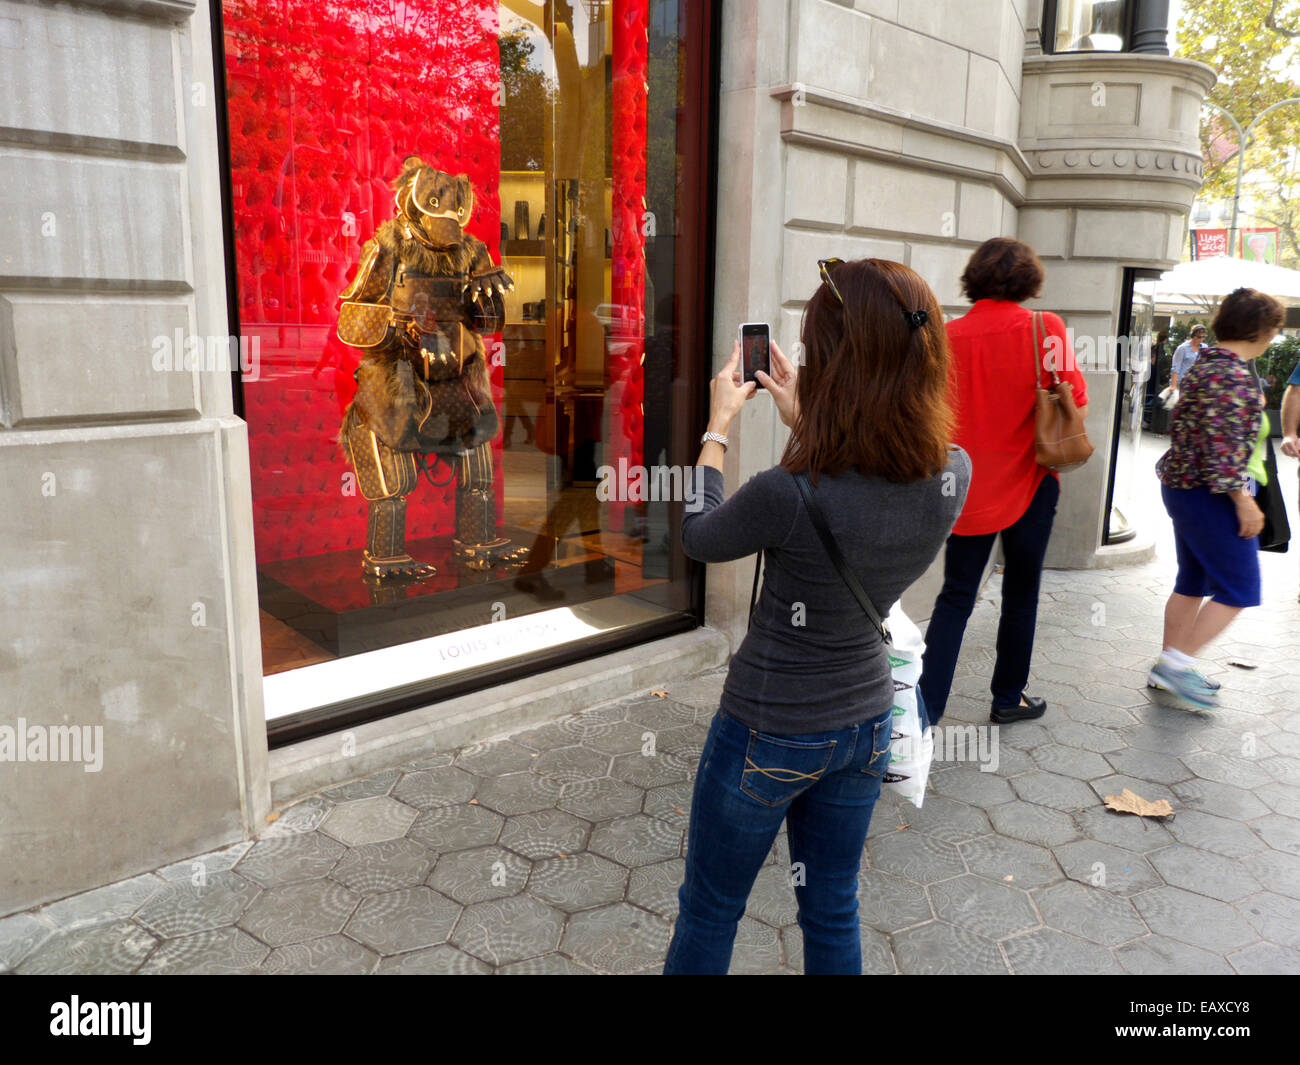 Spain Catalonia Barcelona tourist taking picture LV flagship store - Stock Image